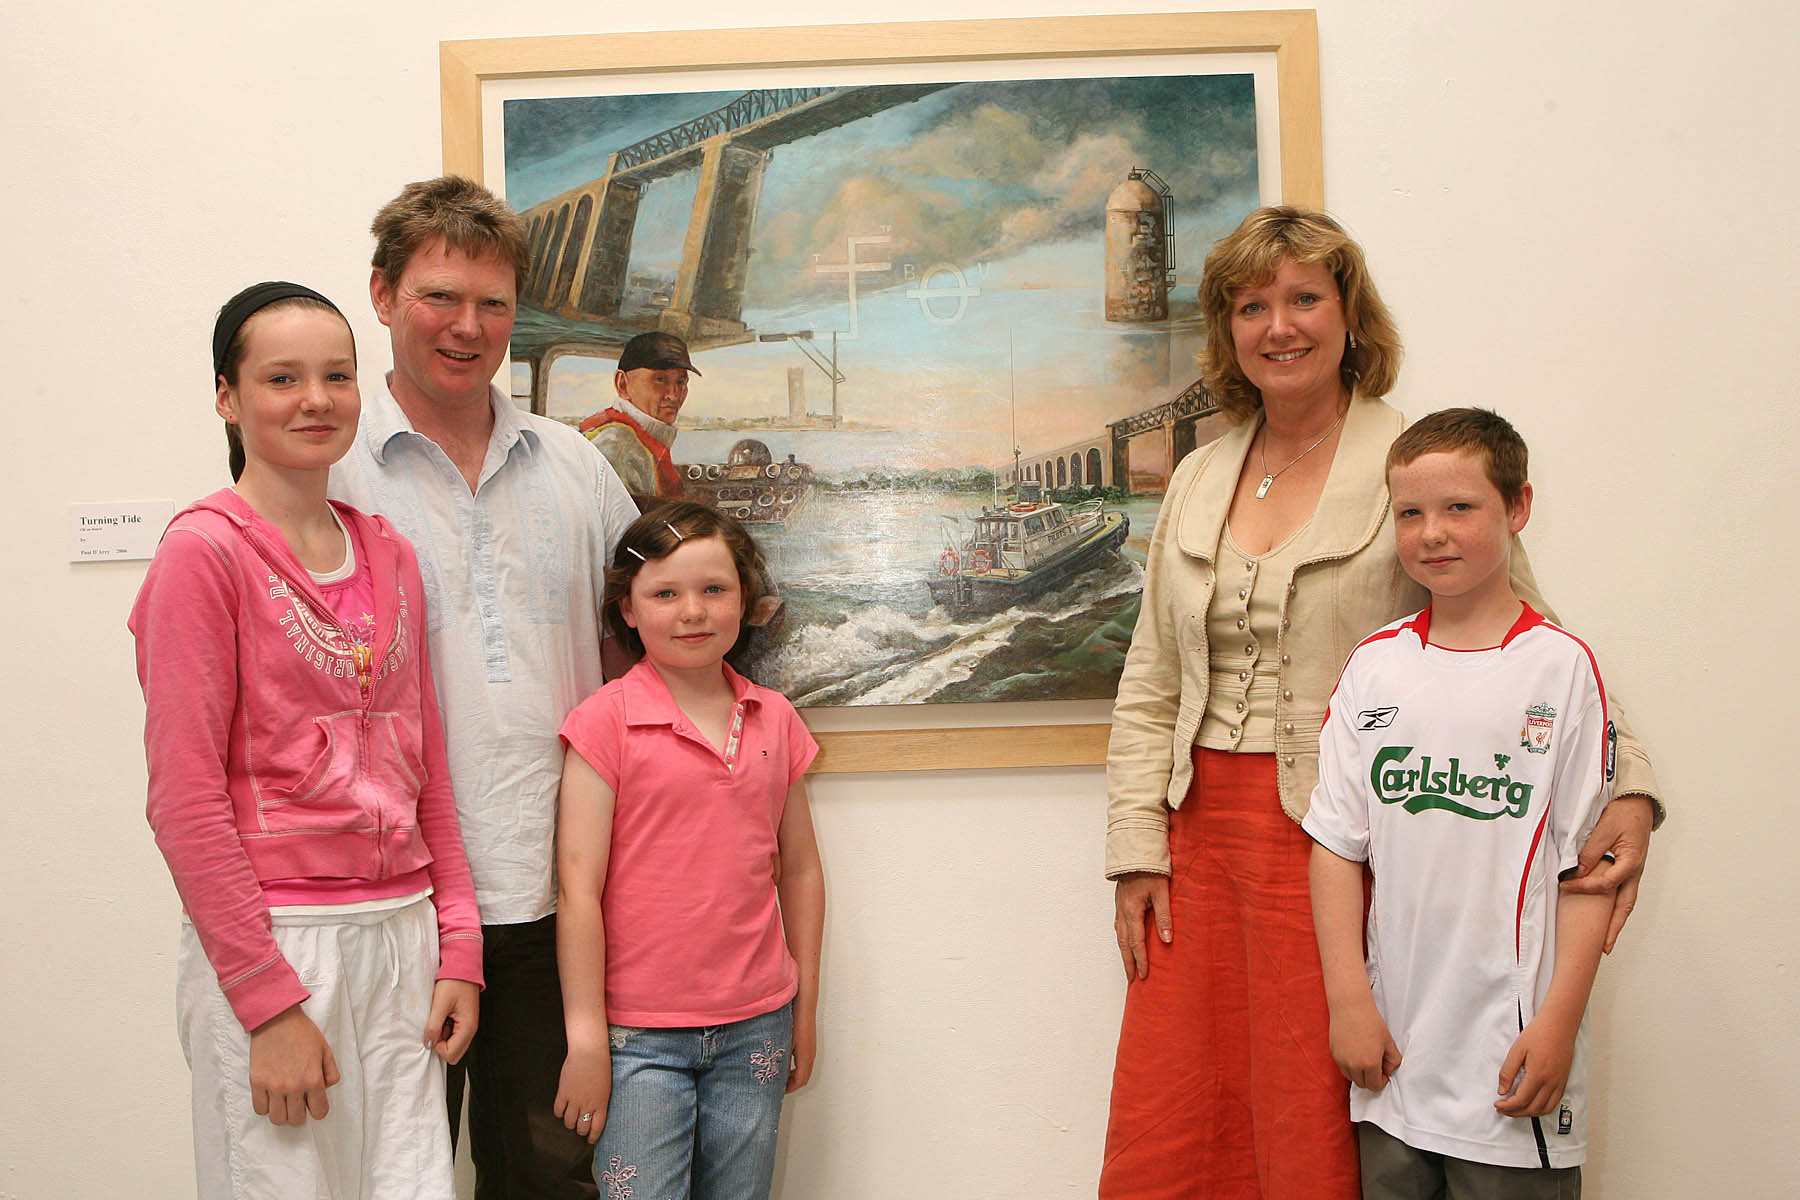 Paul D'Arcy and his Family 2006